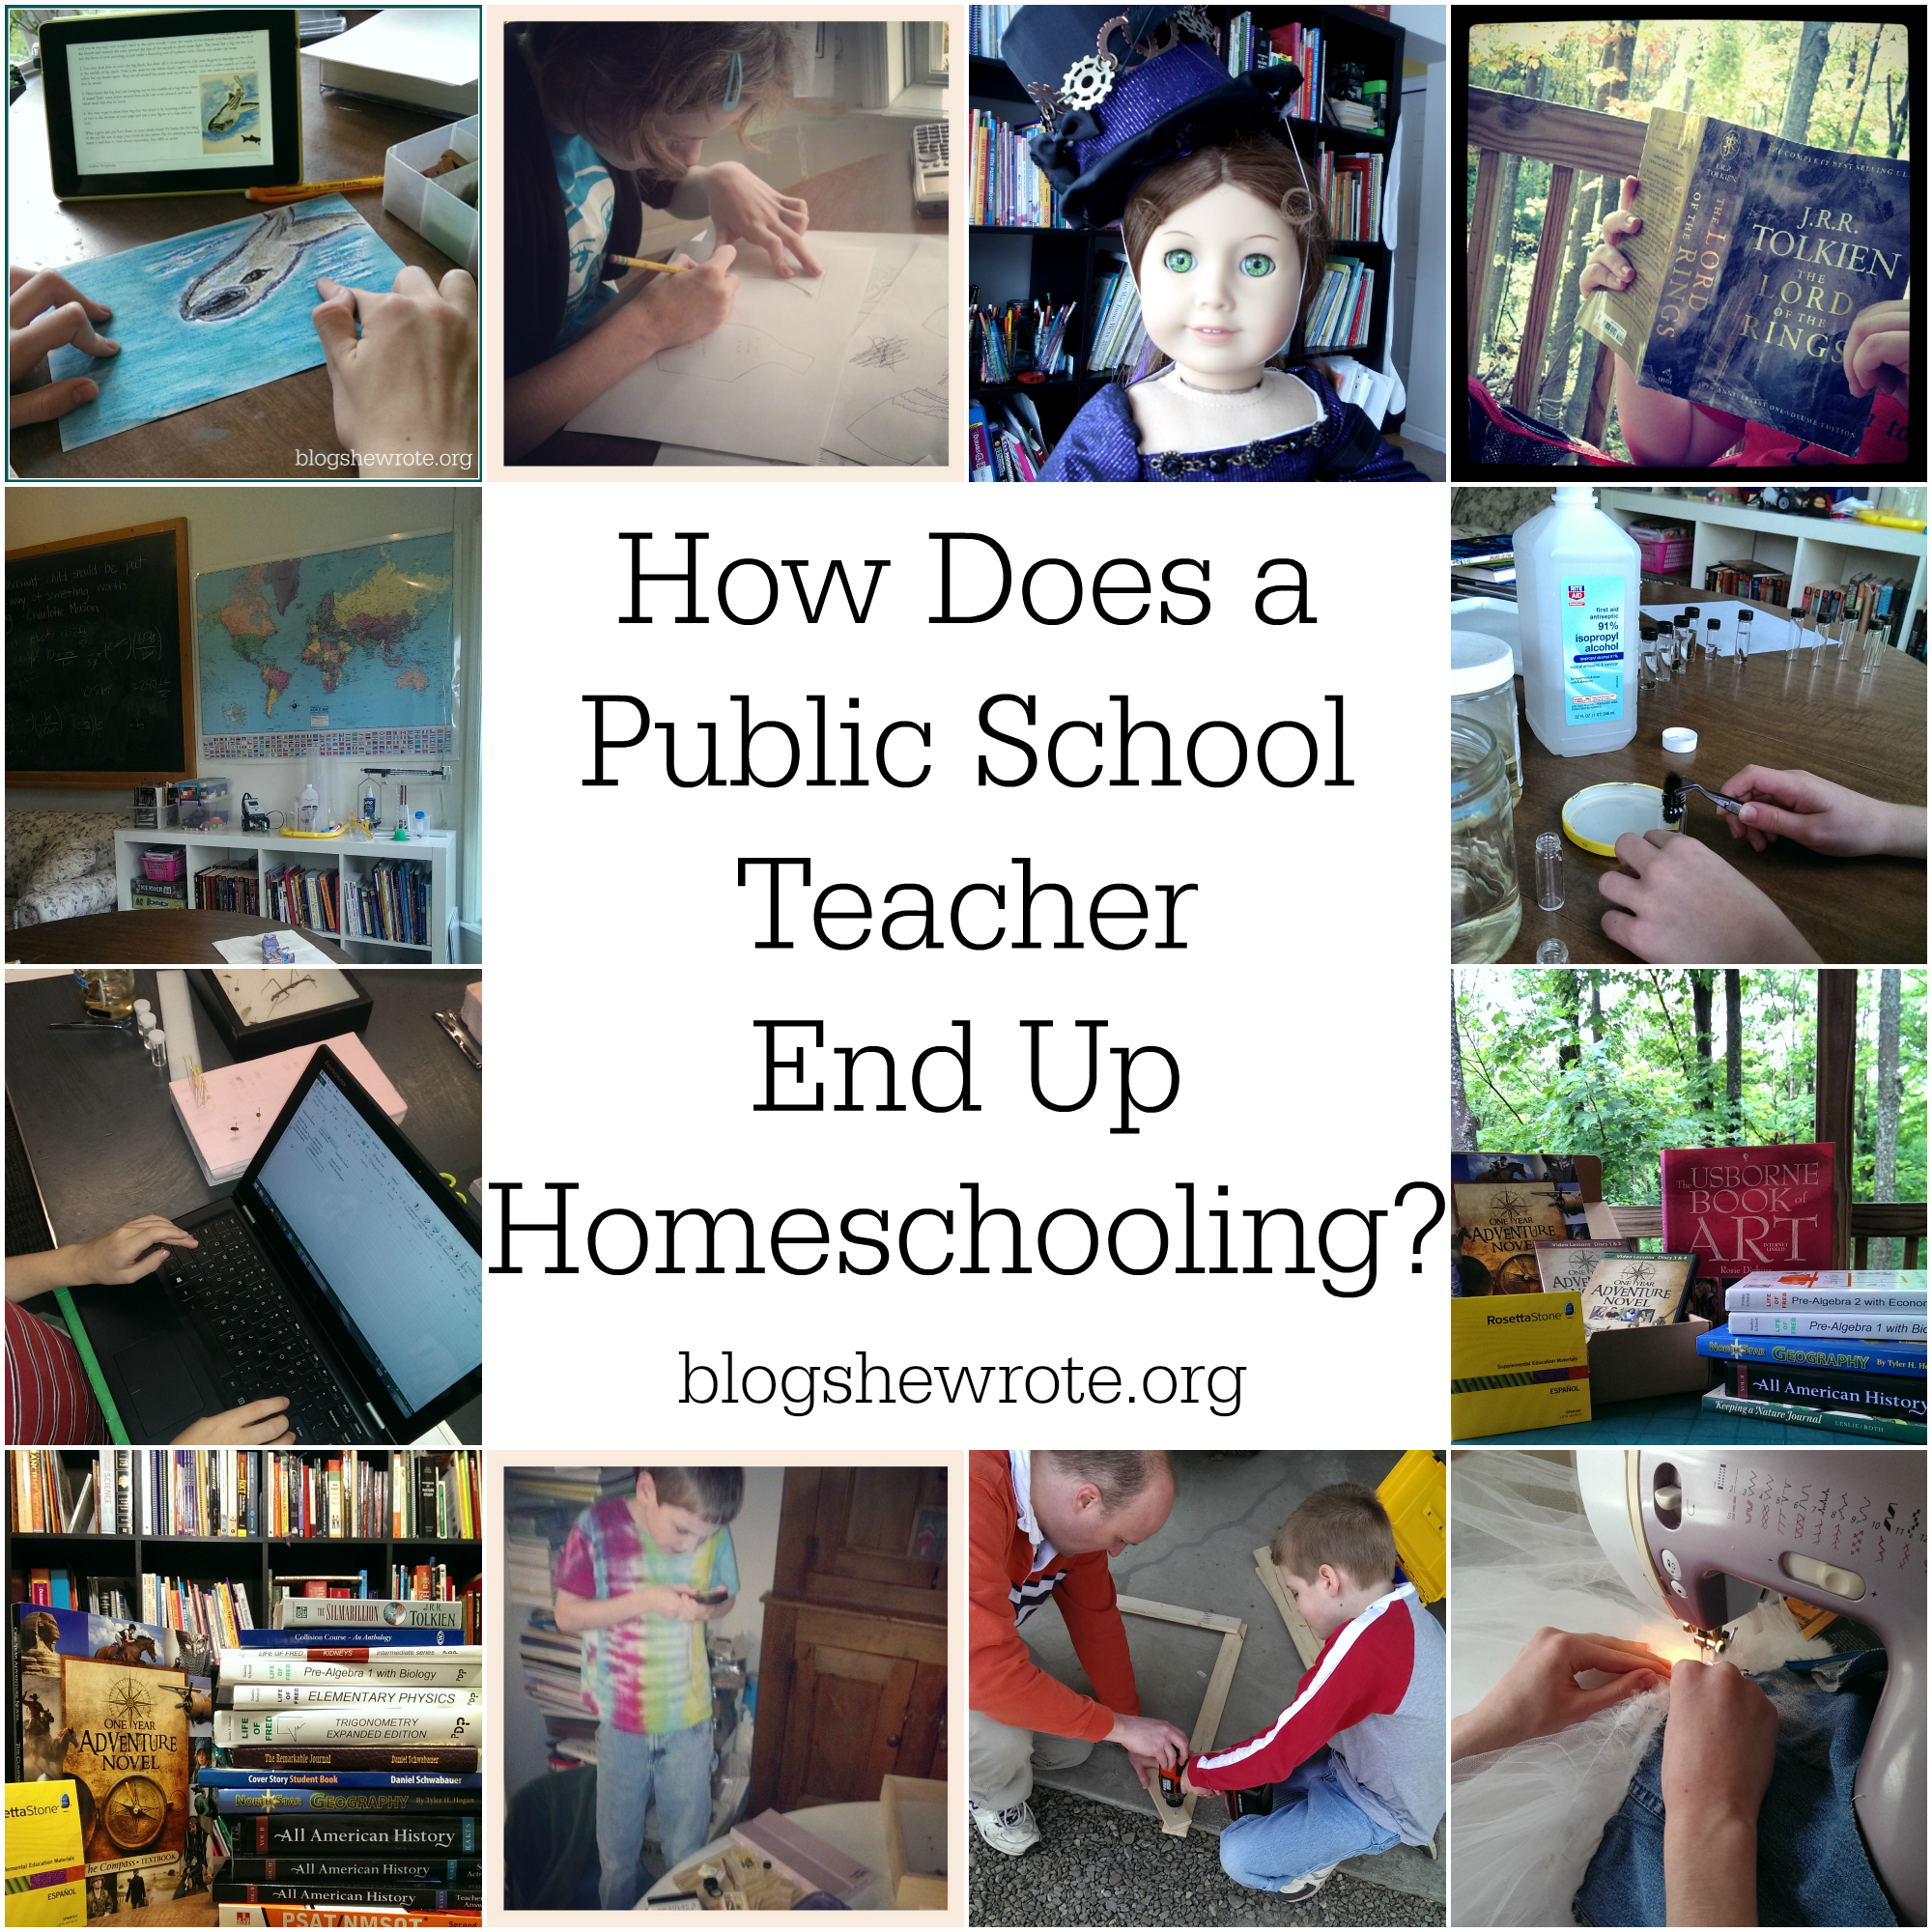 Blog, She Wrote: How Does a Public School Teacher End Up Homeschooling?